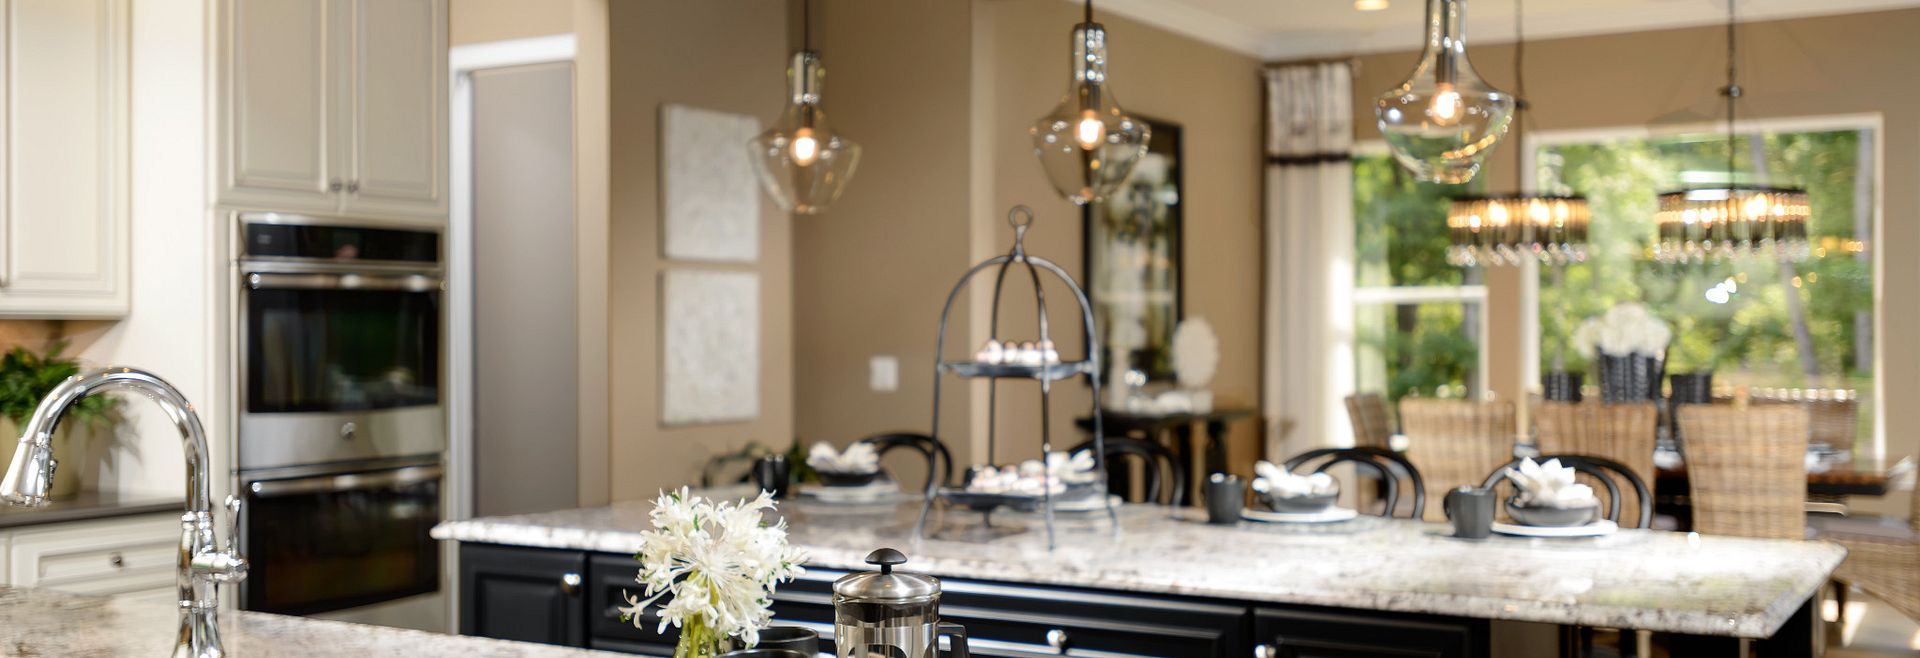 Trilogy at Lake Frederick Model Home the Engage Kitchen